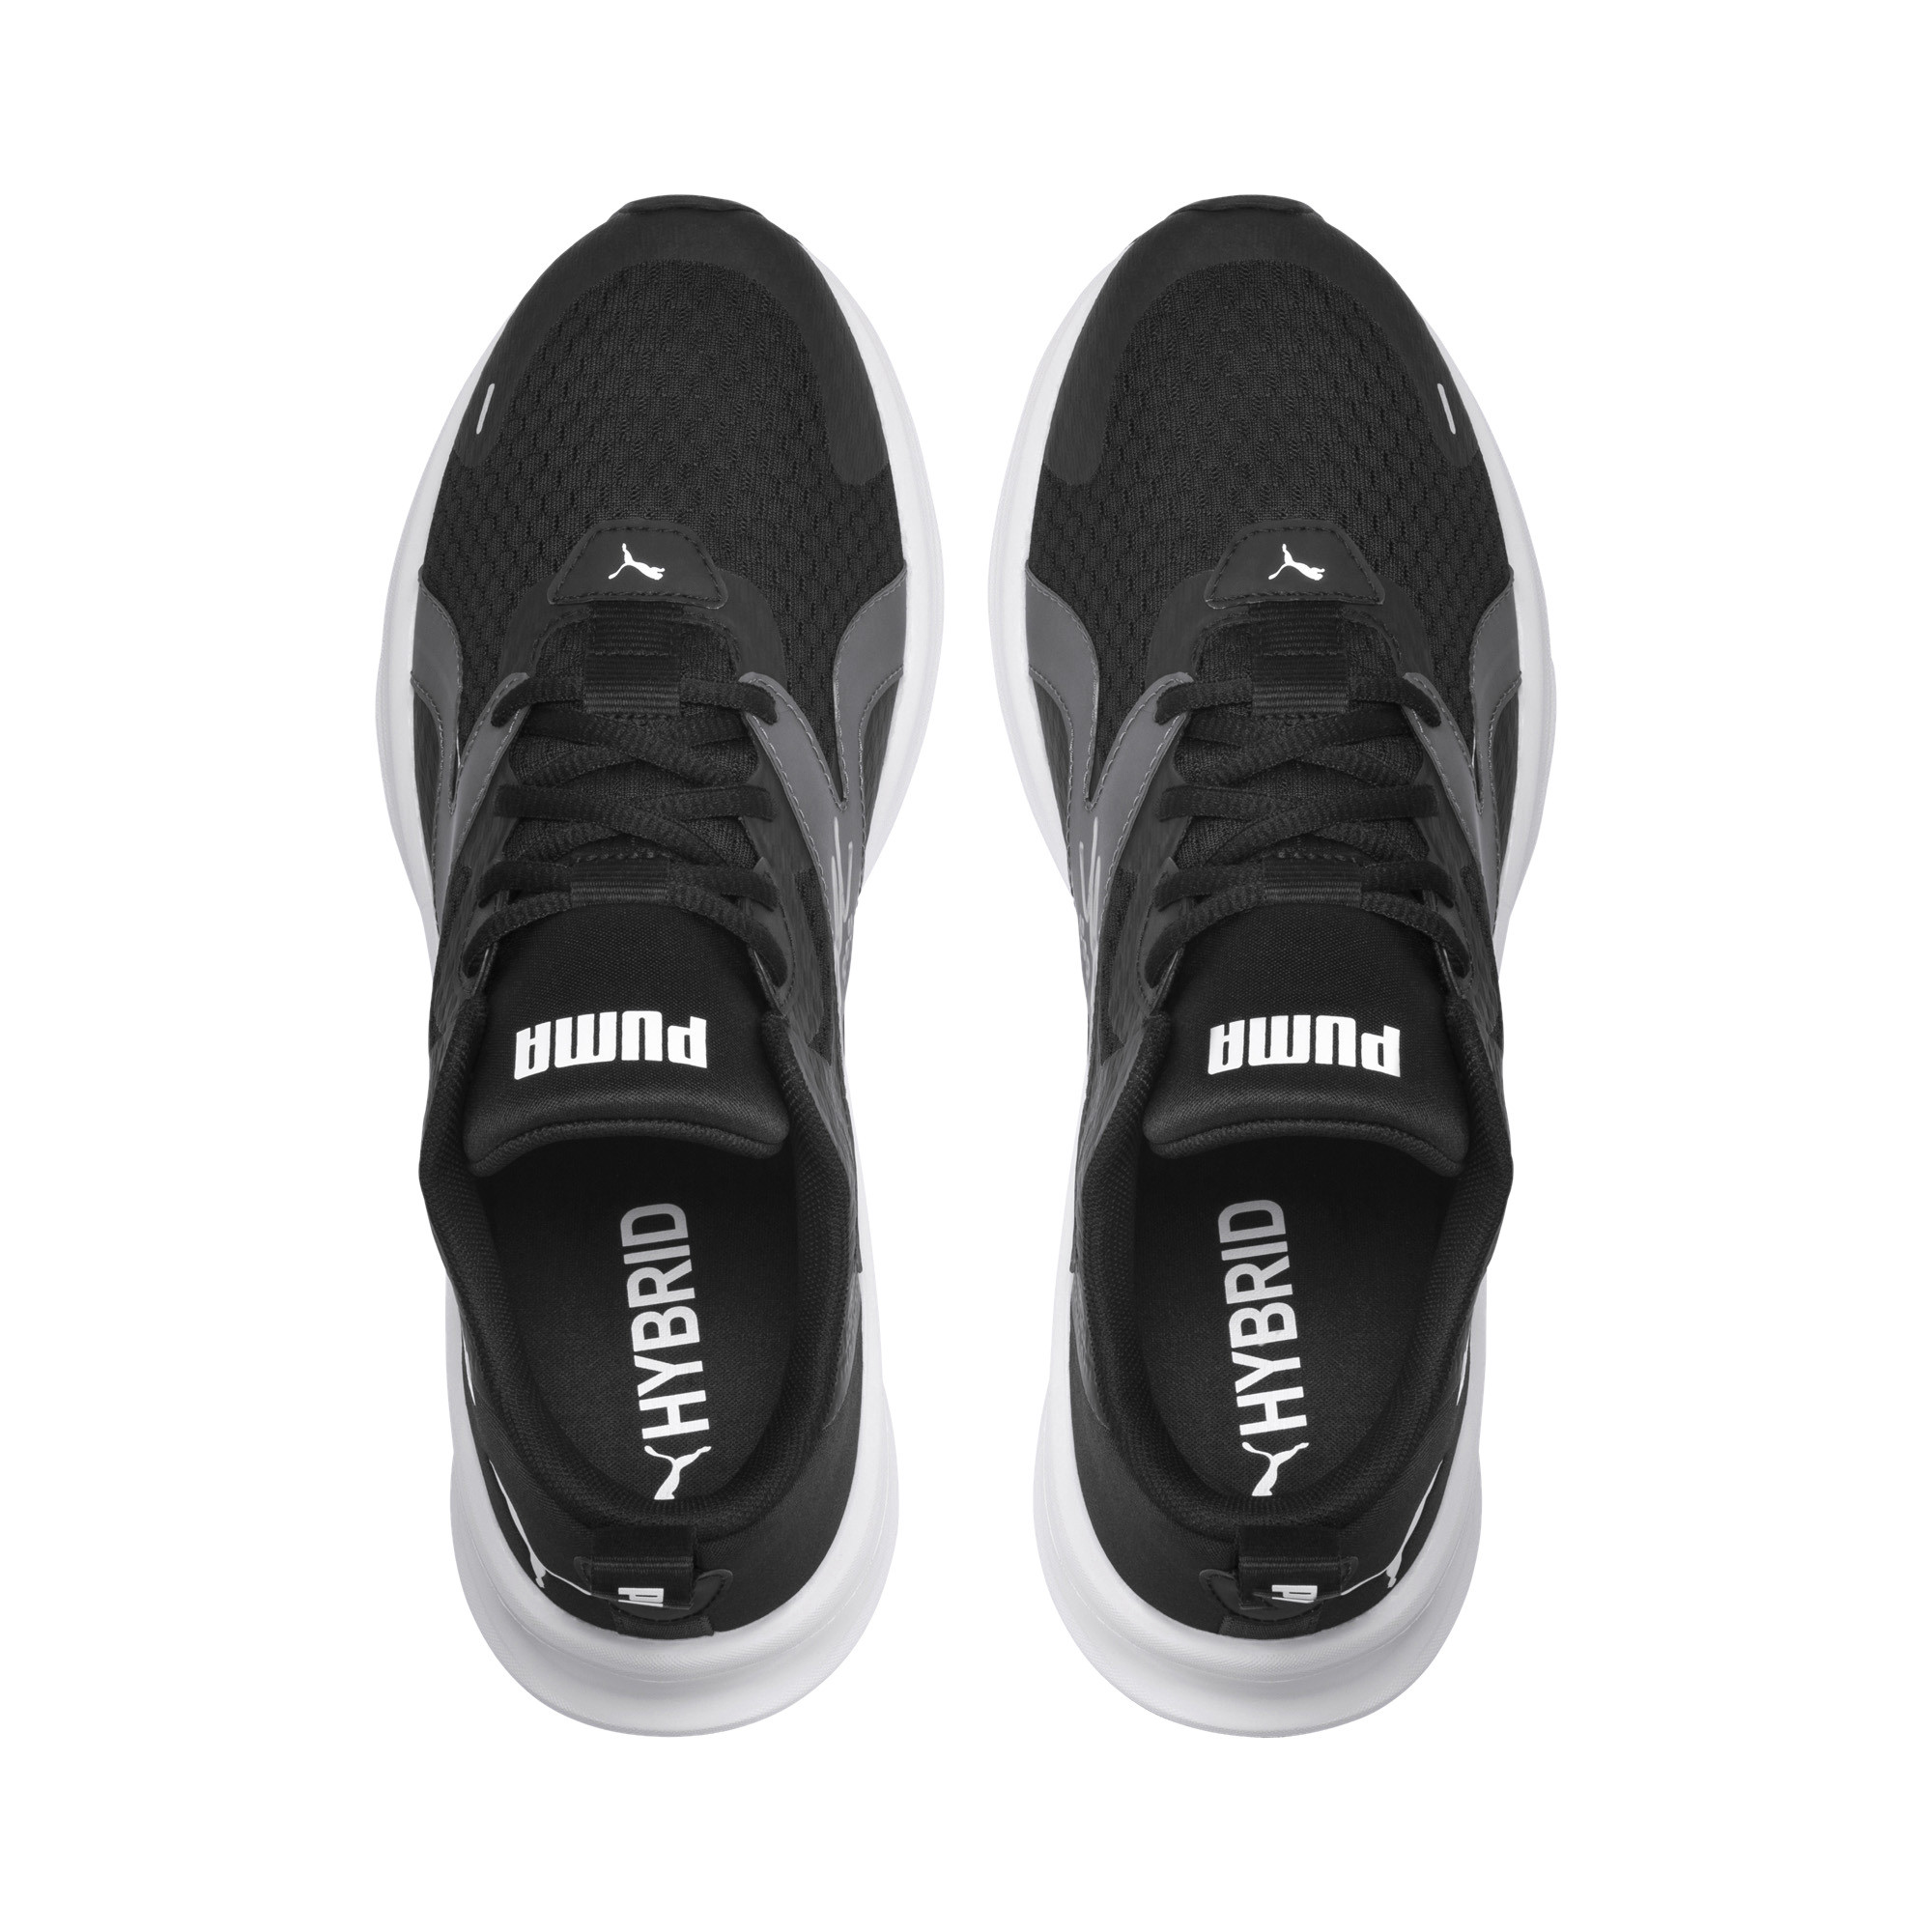 PUMA-Men-039-s-HYBRID-Fuego-Running-Shoes thumbnail 16